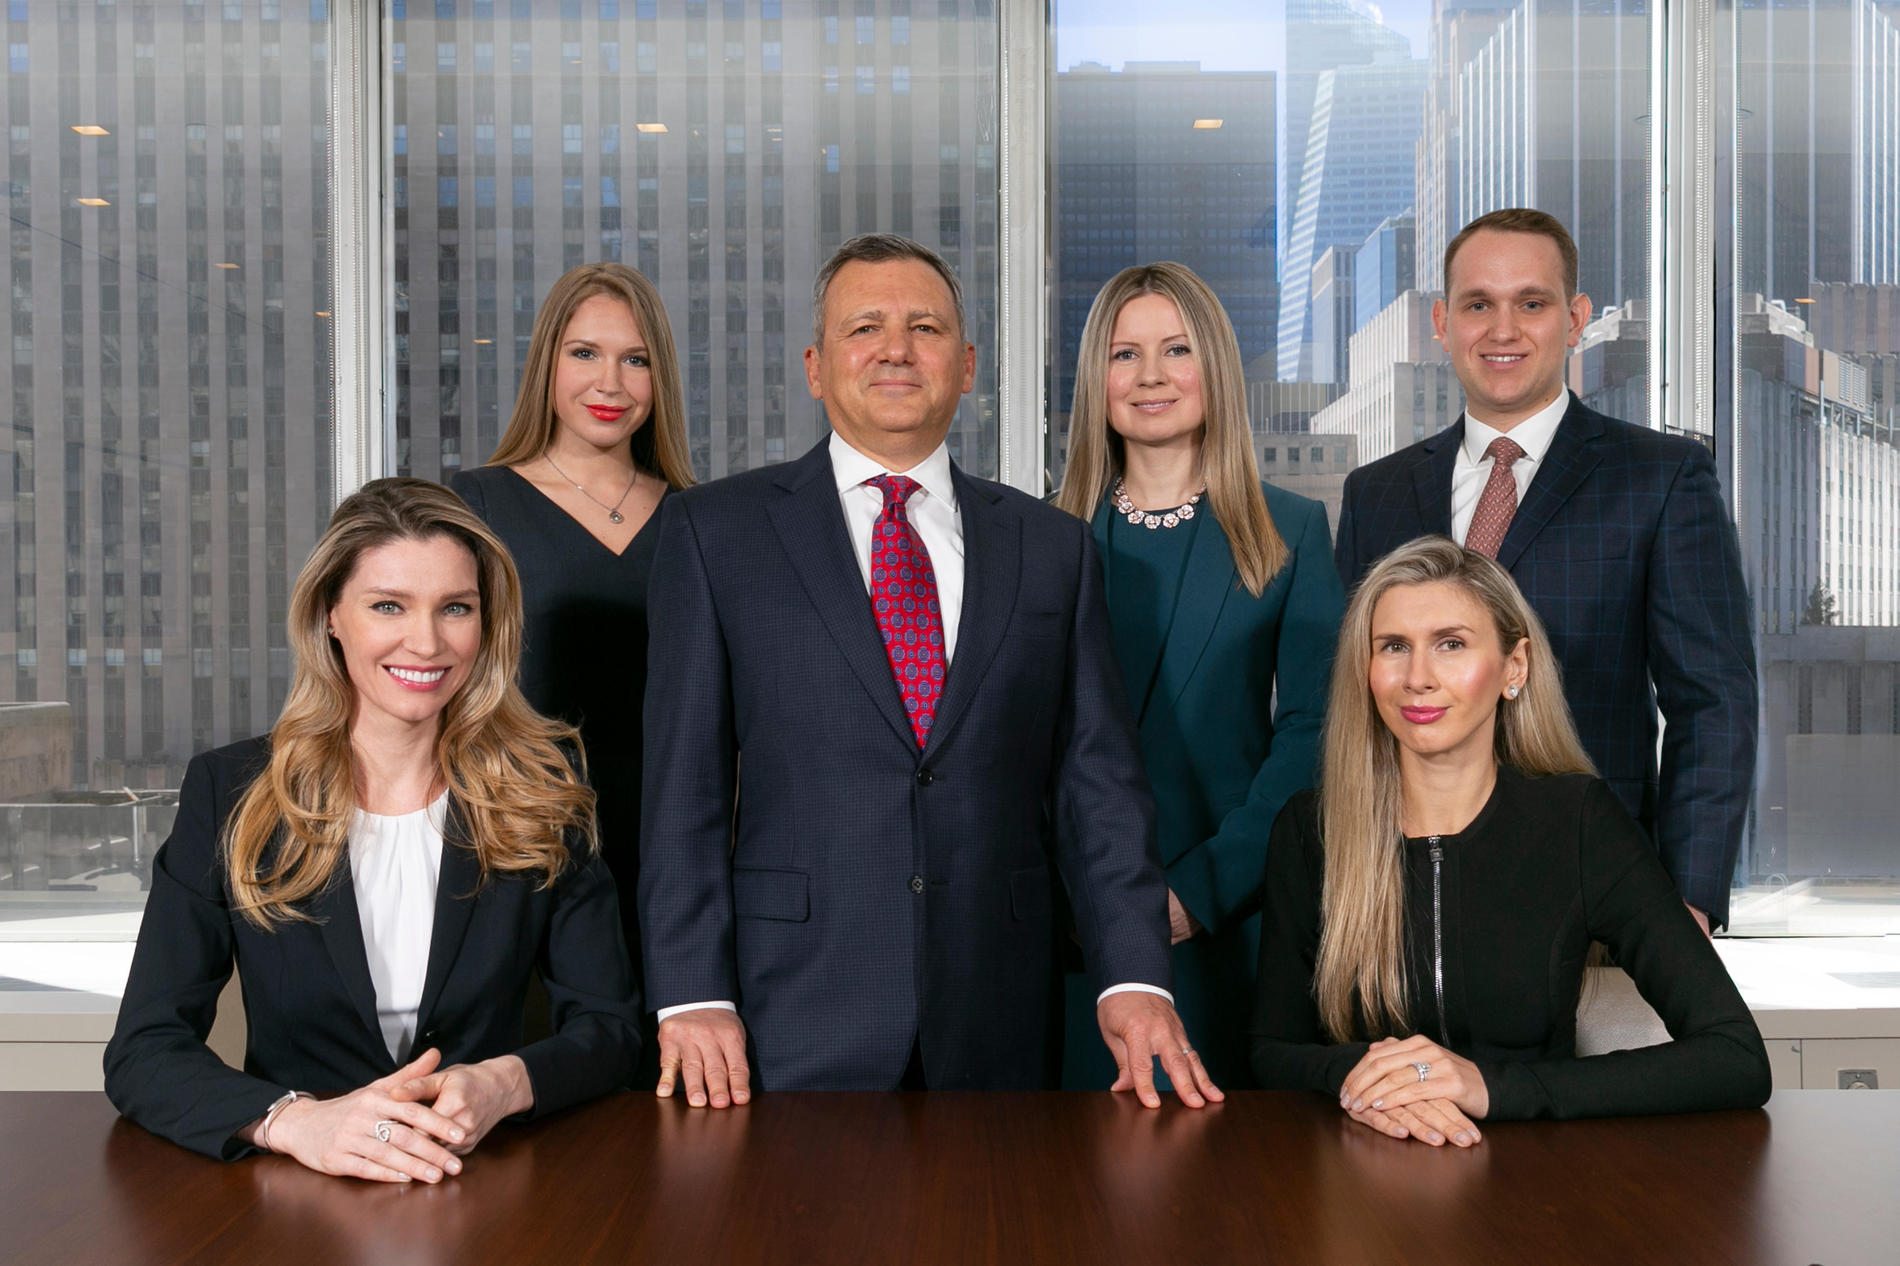 AGS Wealth Management Group   New York, NY   Morgan Stanley Wealth